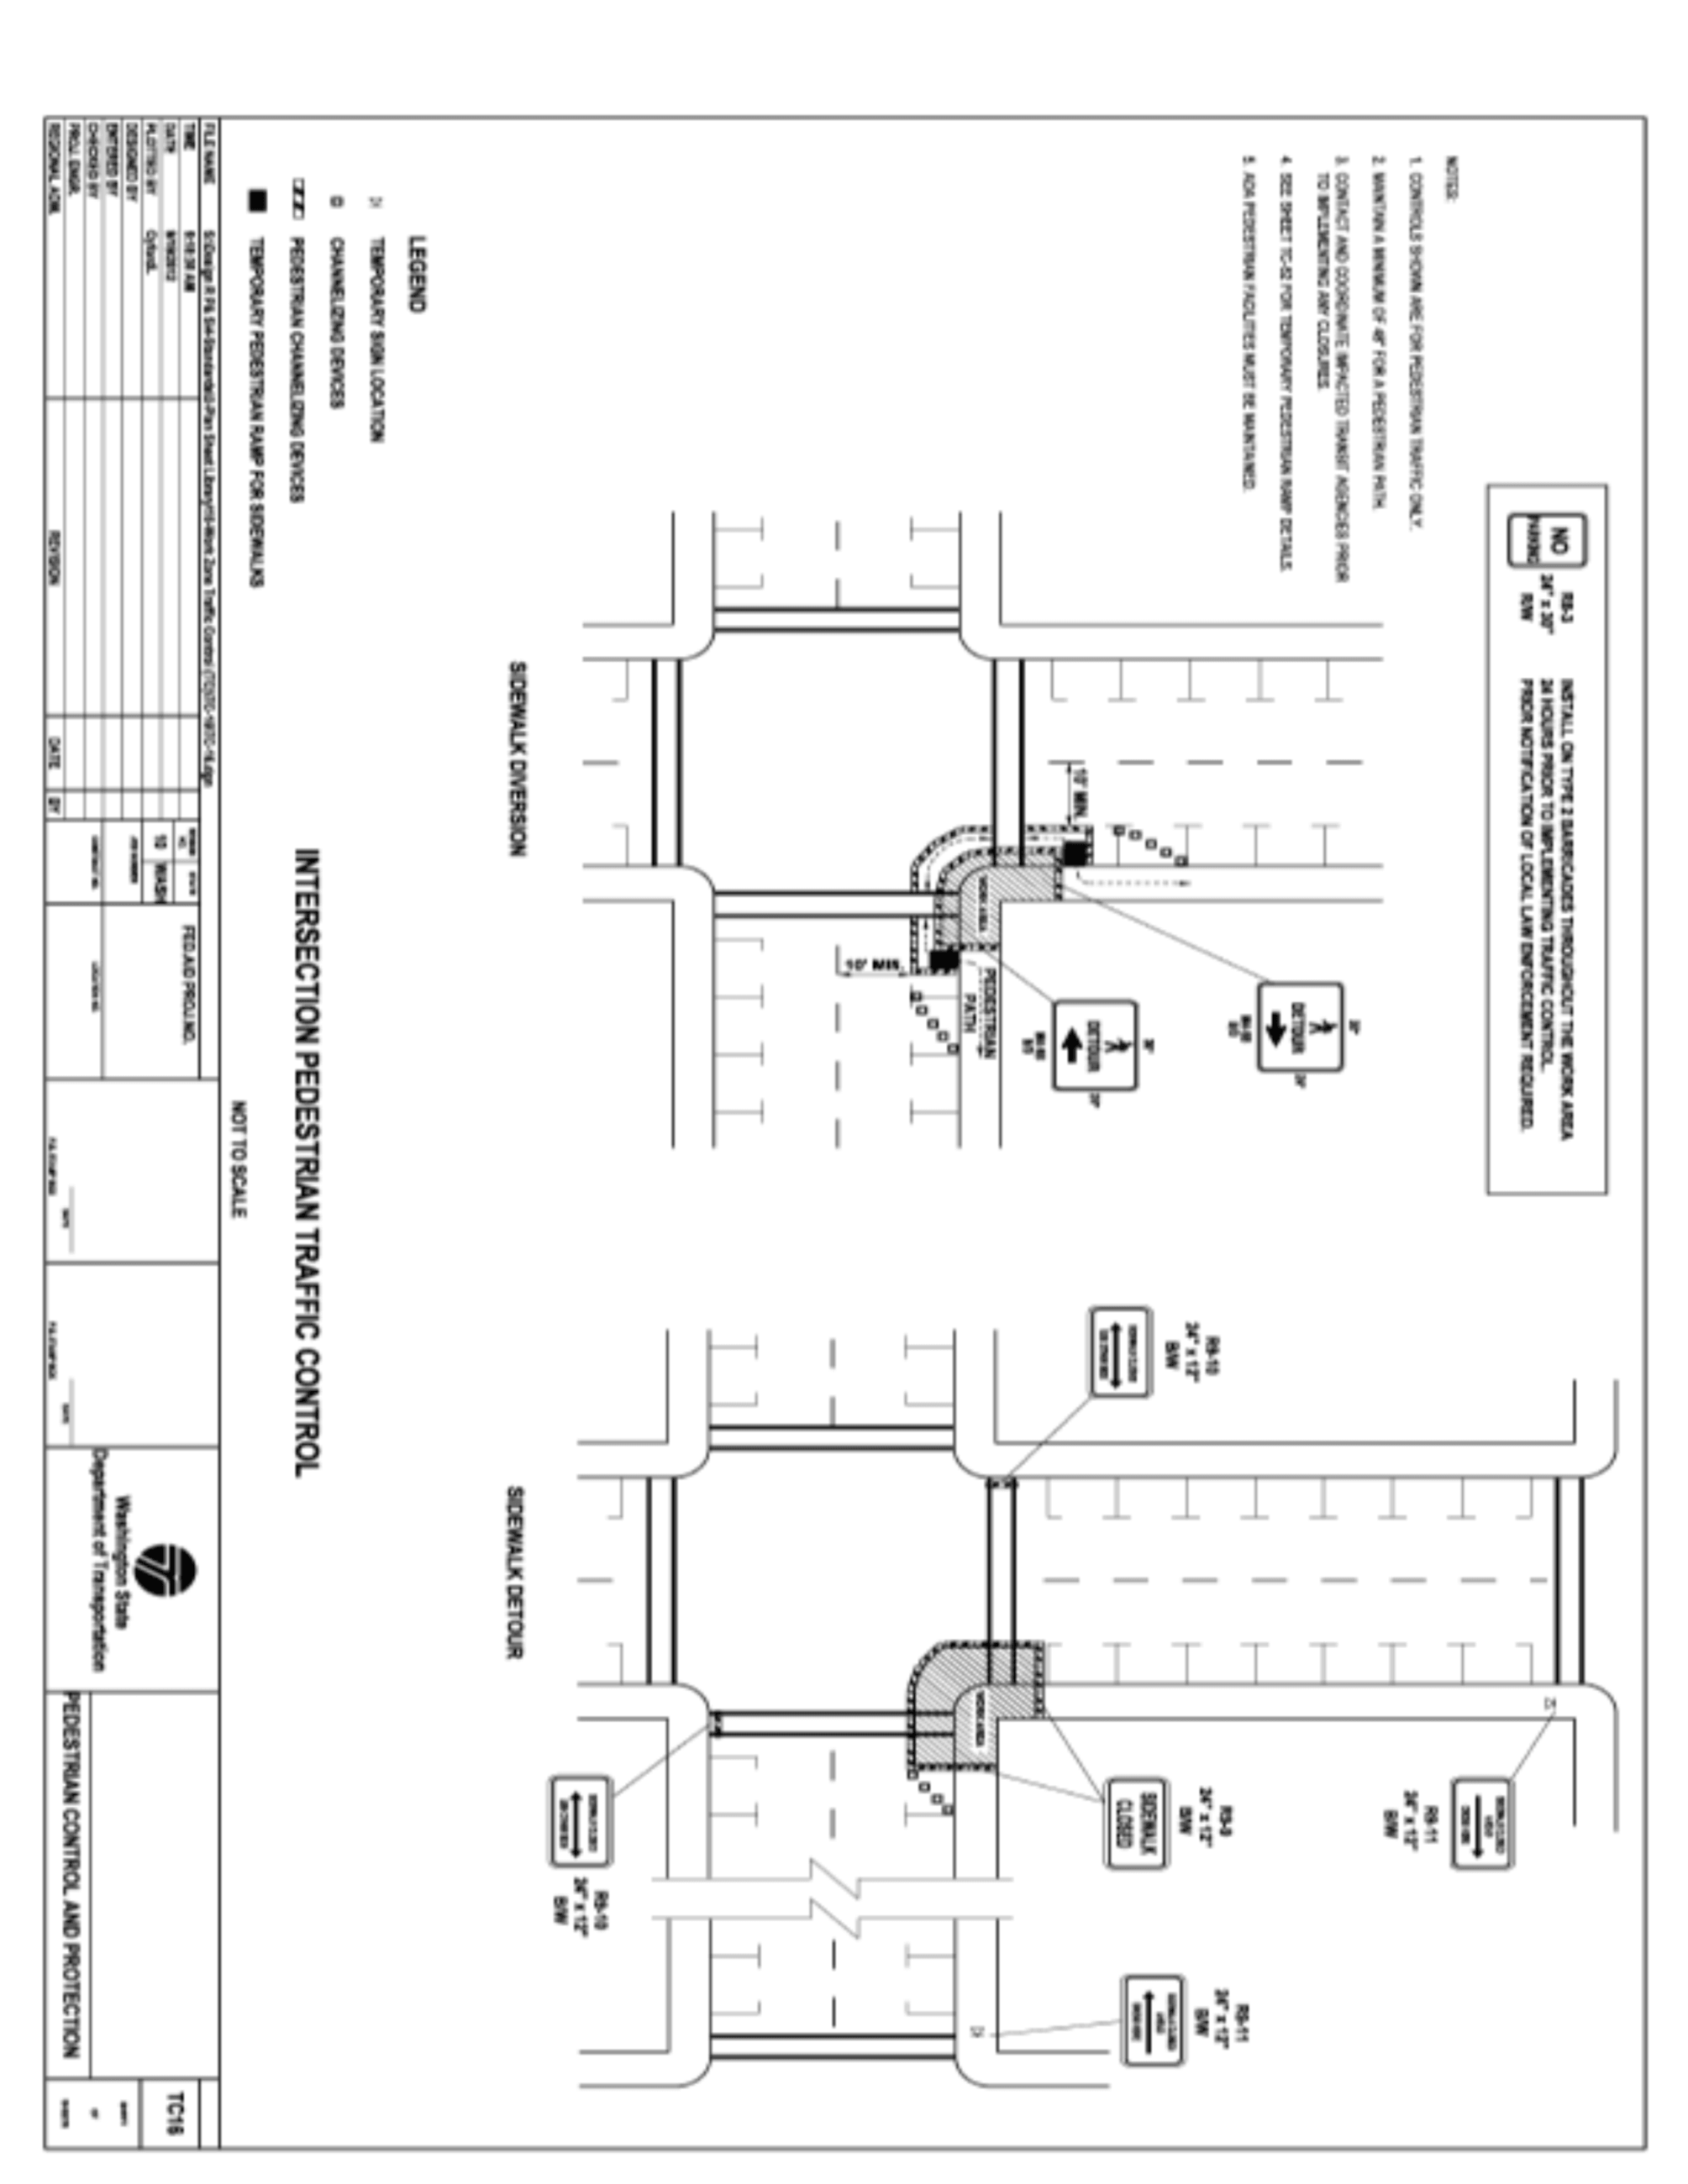 Sidewalk Closure Intersection Standard Traffic Control Plan Image